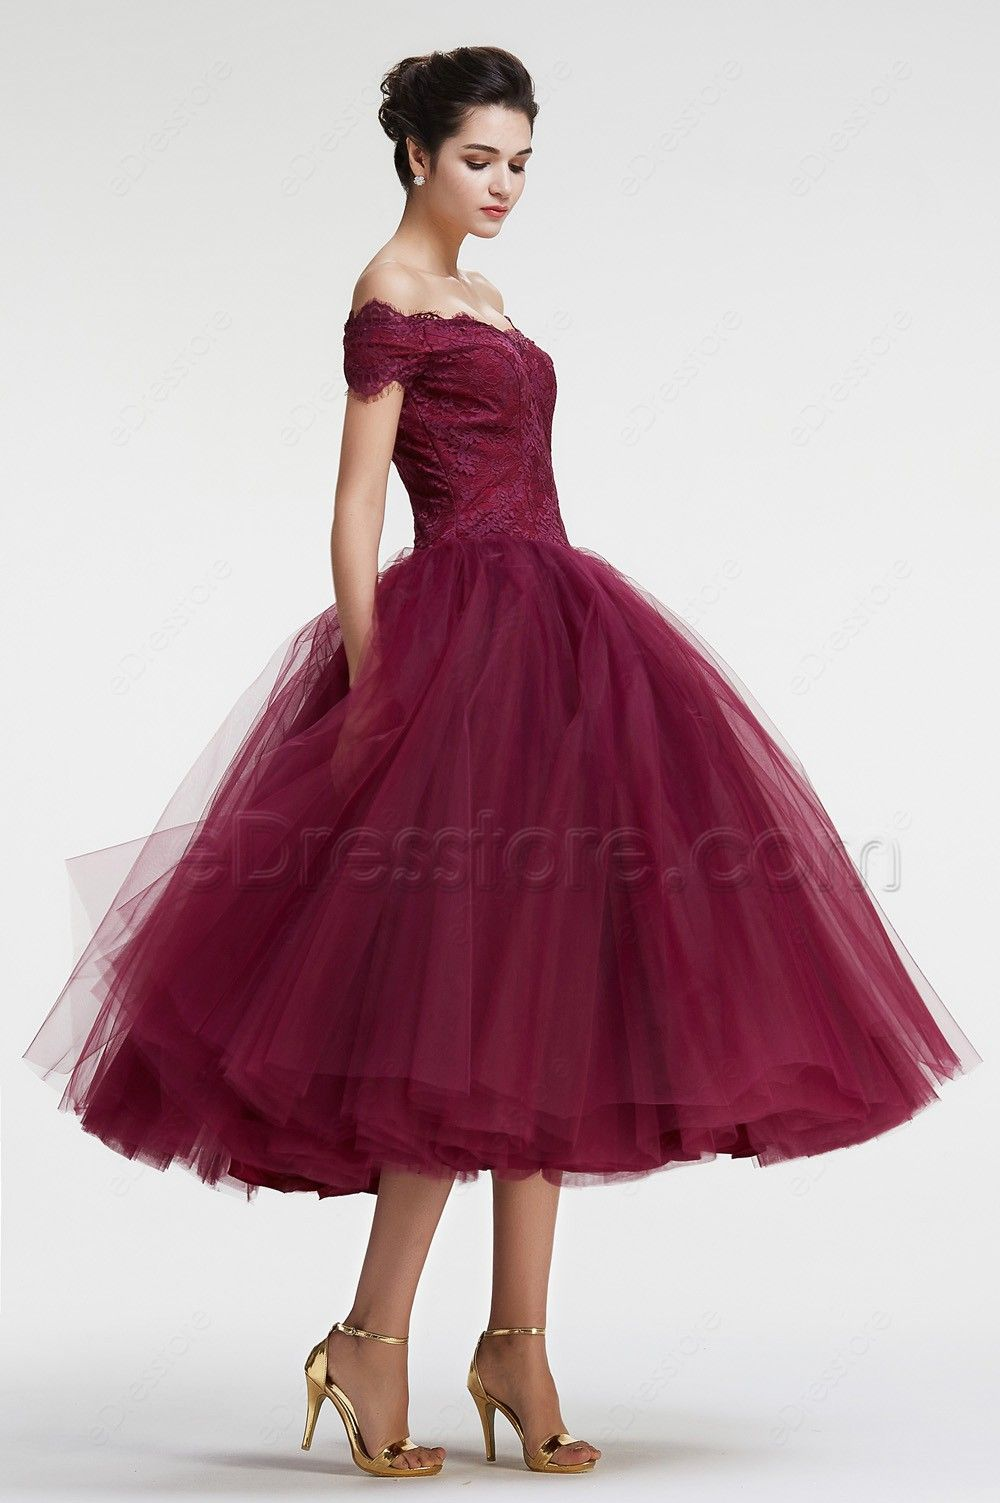 The burgundy prom dress features off the shoulder neckline with scalloped  lace 30ba141280ed